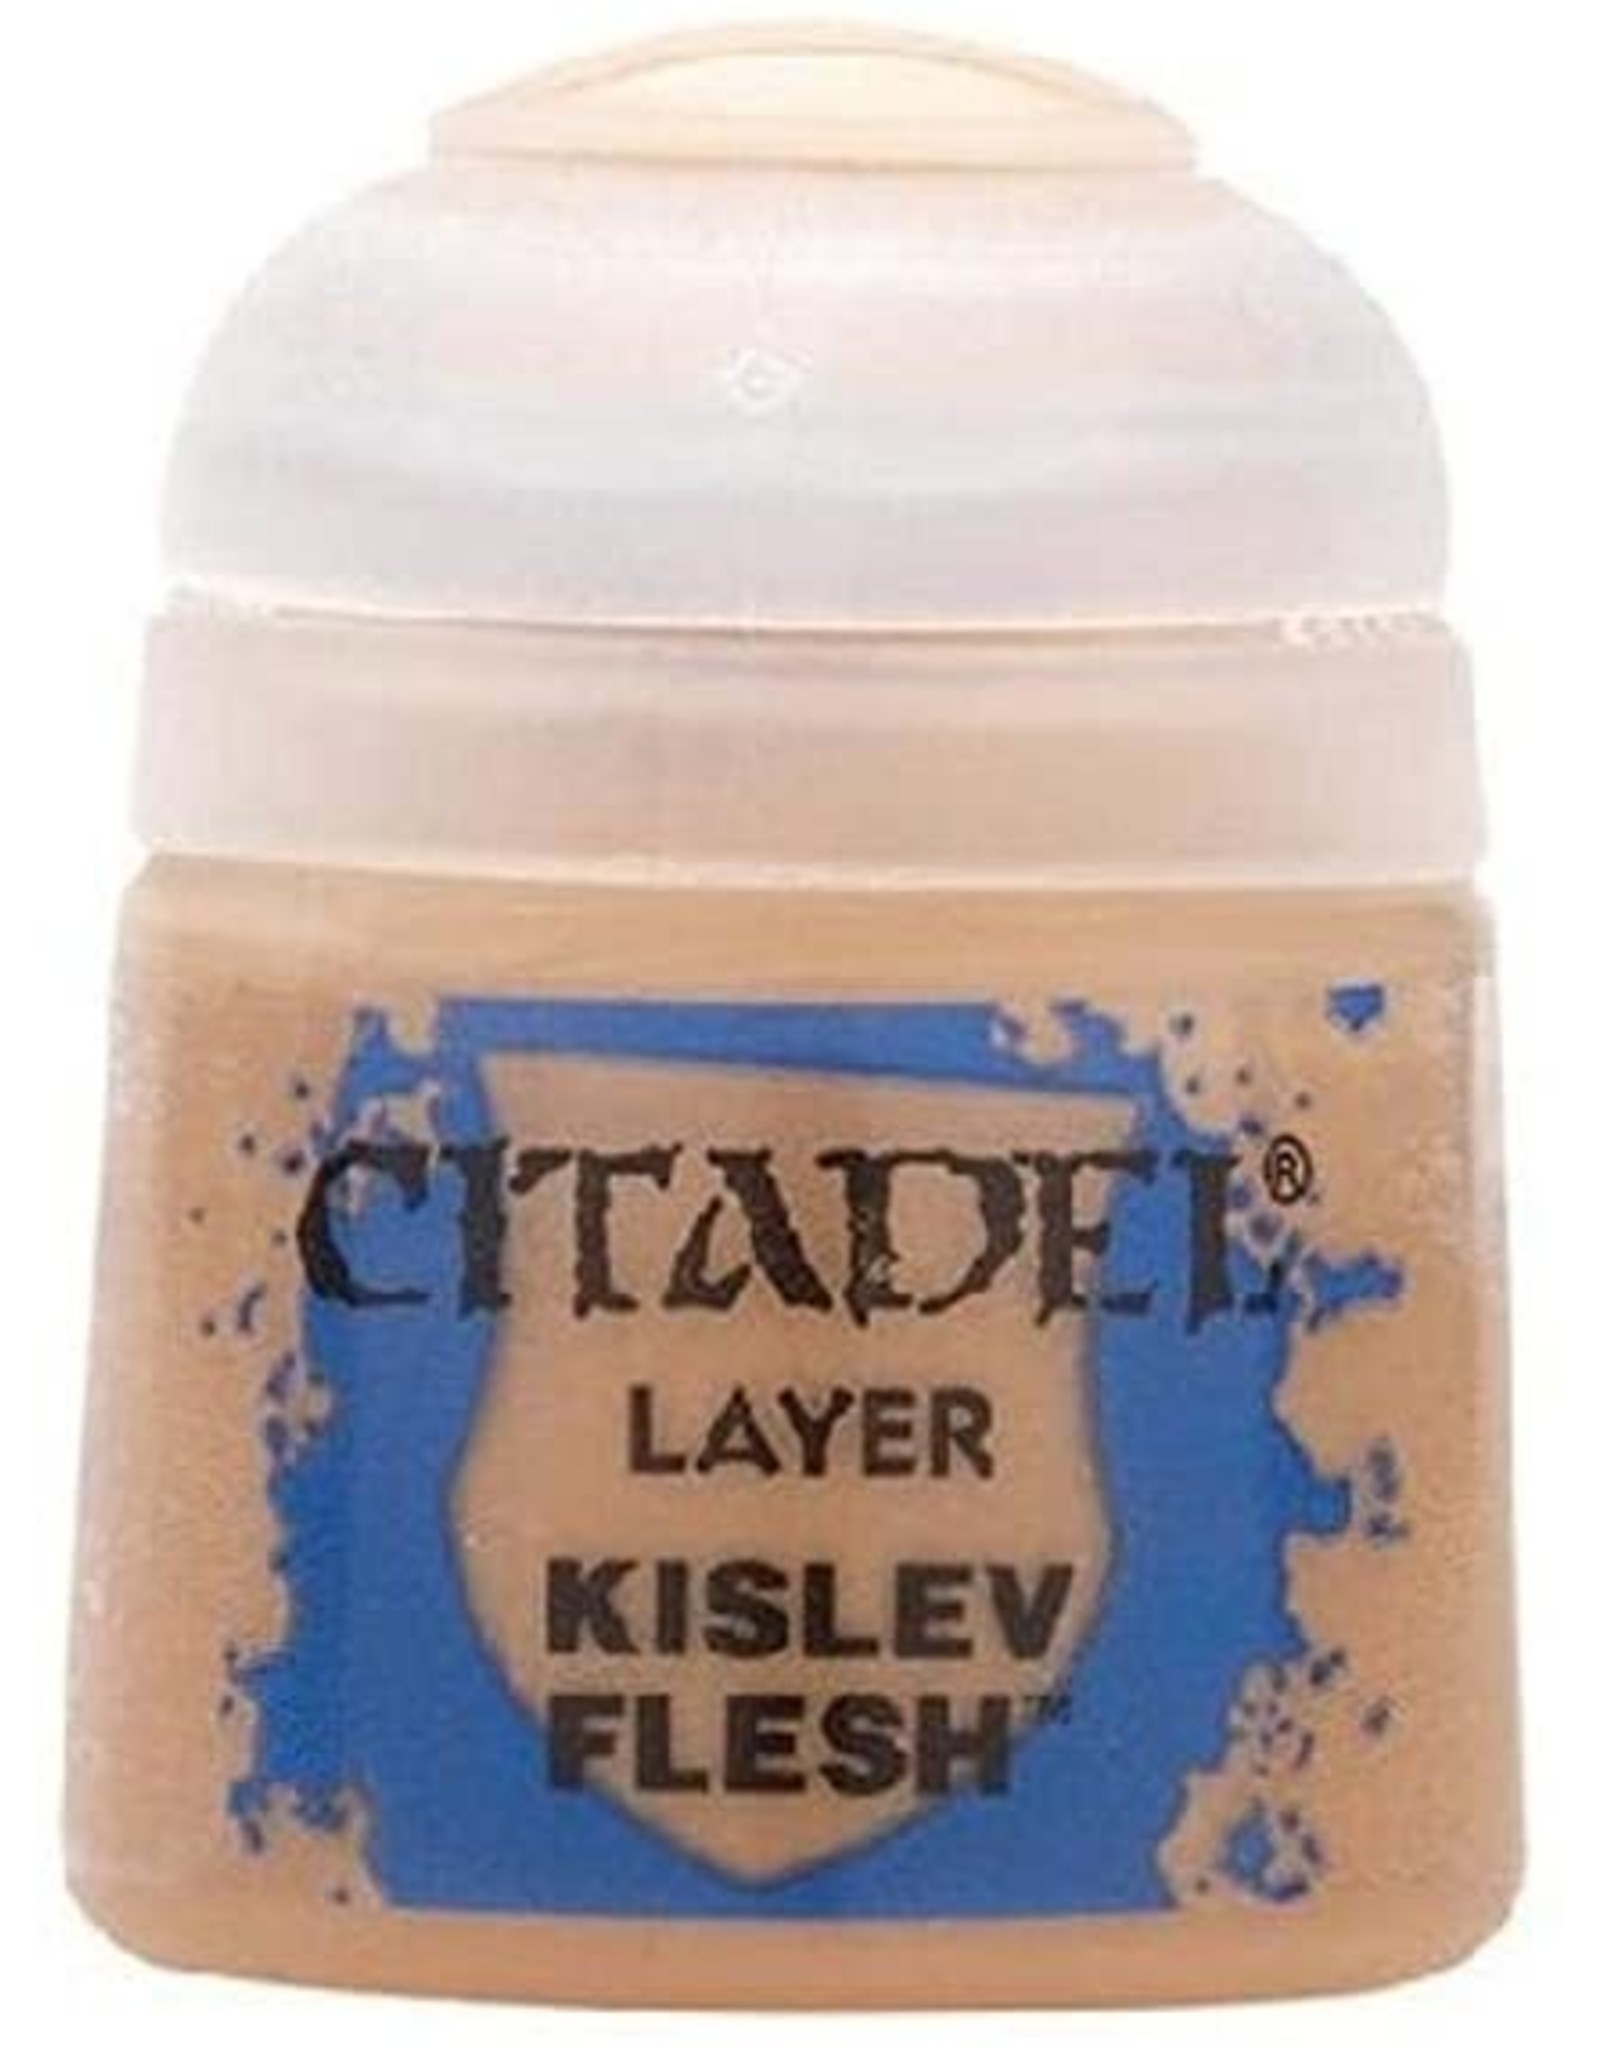 Games Workshop Citadel Paint: Kislev Flesh 12ml